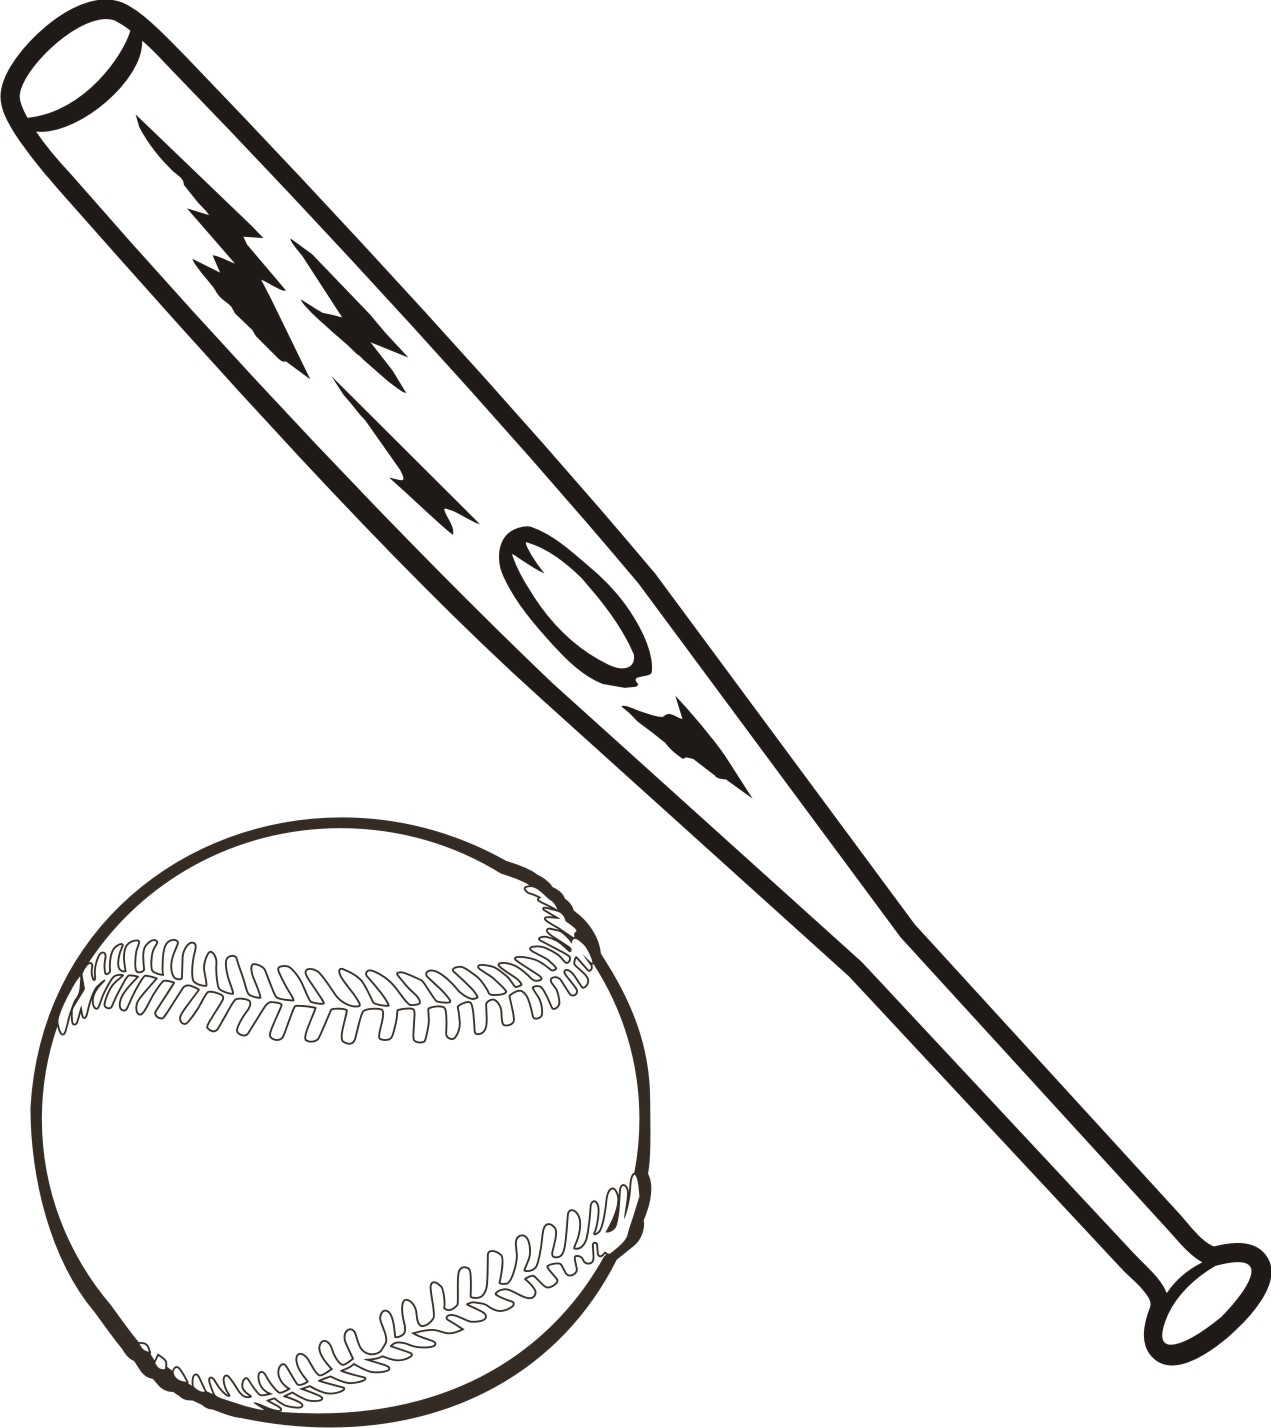 Baseball bat softball bats crossed clipart 2